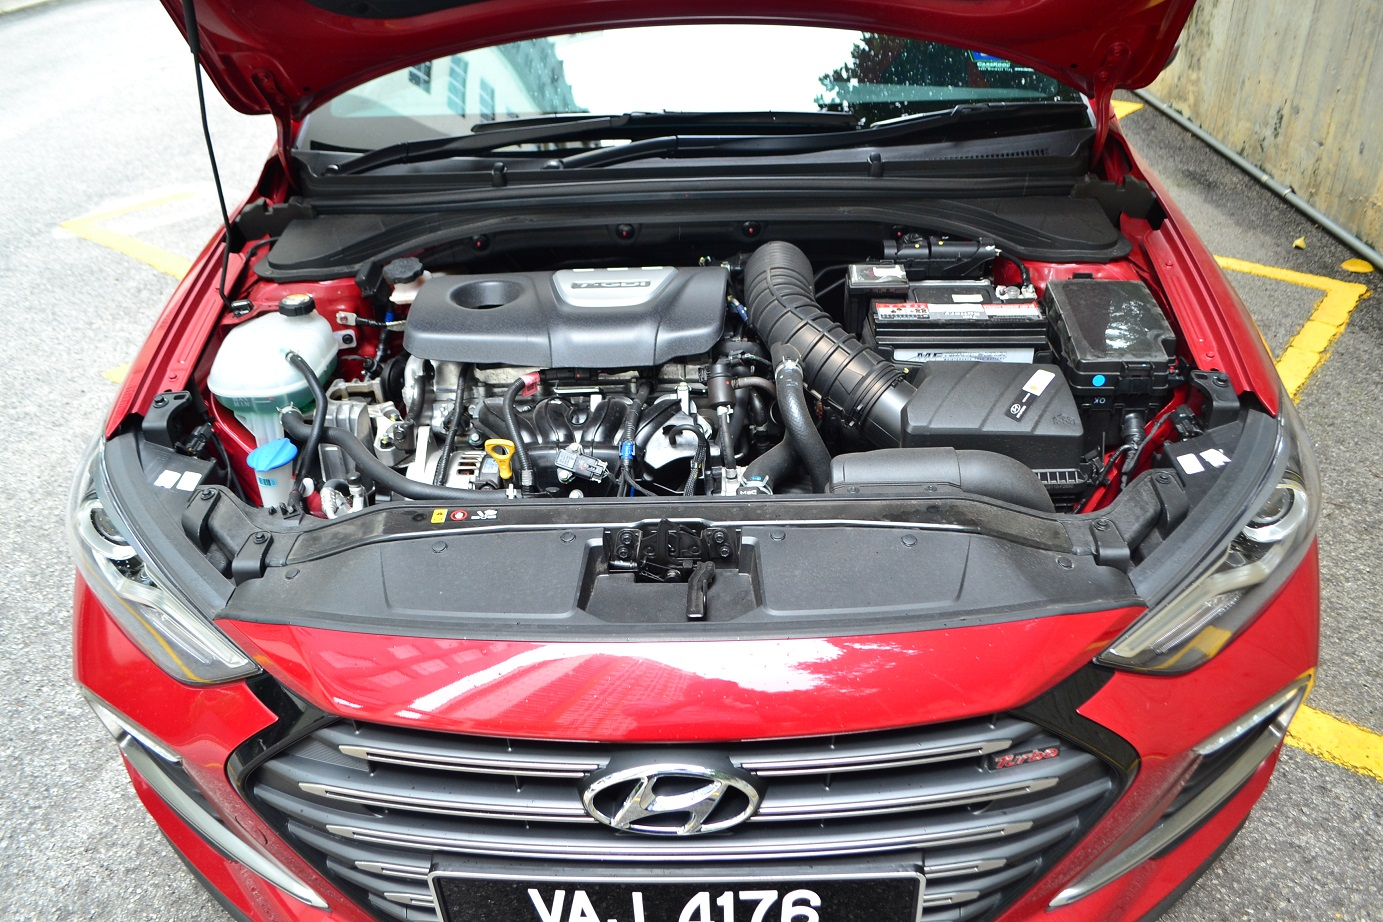 The Hyundai Elantra And Sport Covering All Bases Kensomuse Power Steering Leak Forums Forum To Some Extent Having Two Engine Options For Makes Sense Not Everyone Wants A Rocket Monster Gamma 16 T Gdi That Has Maximum Output